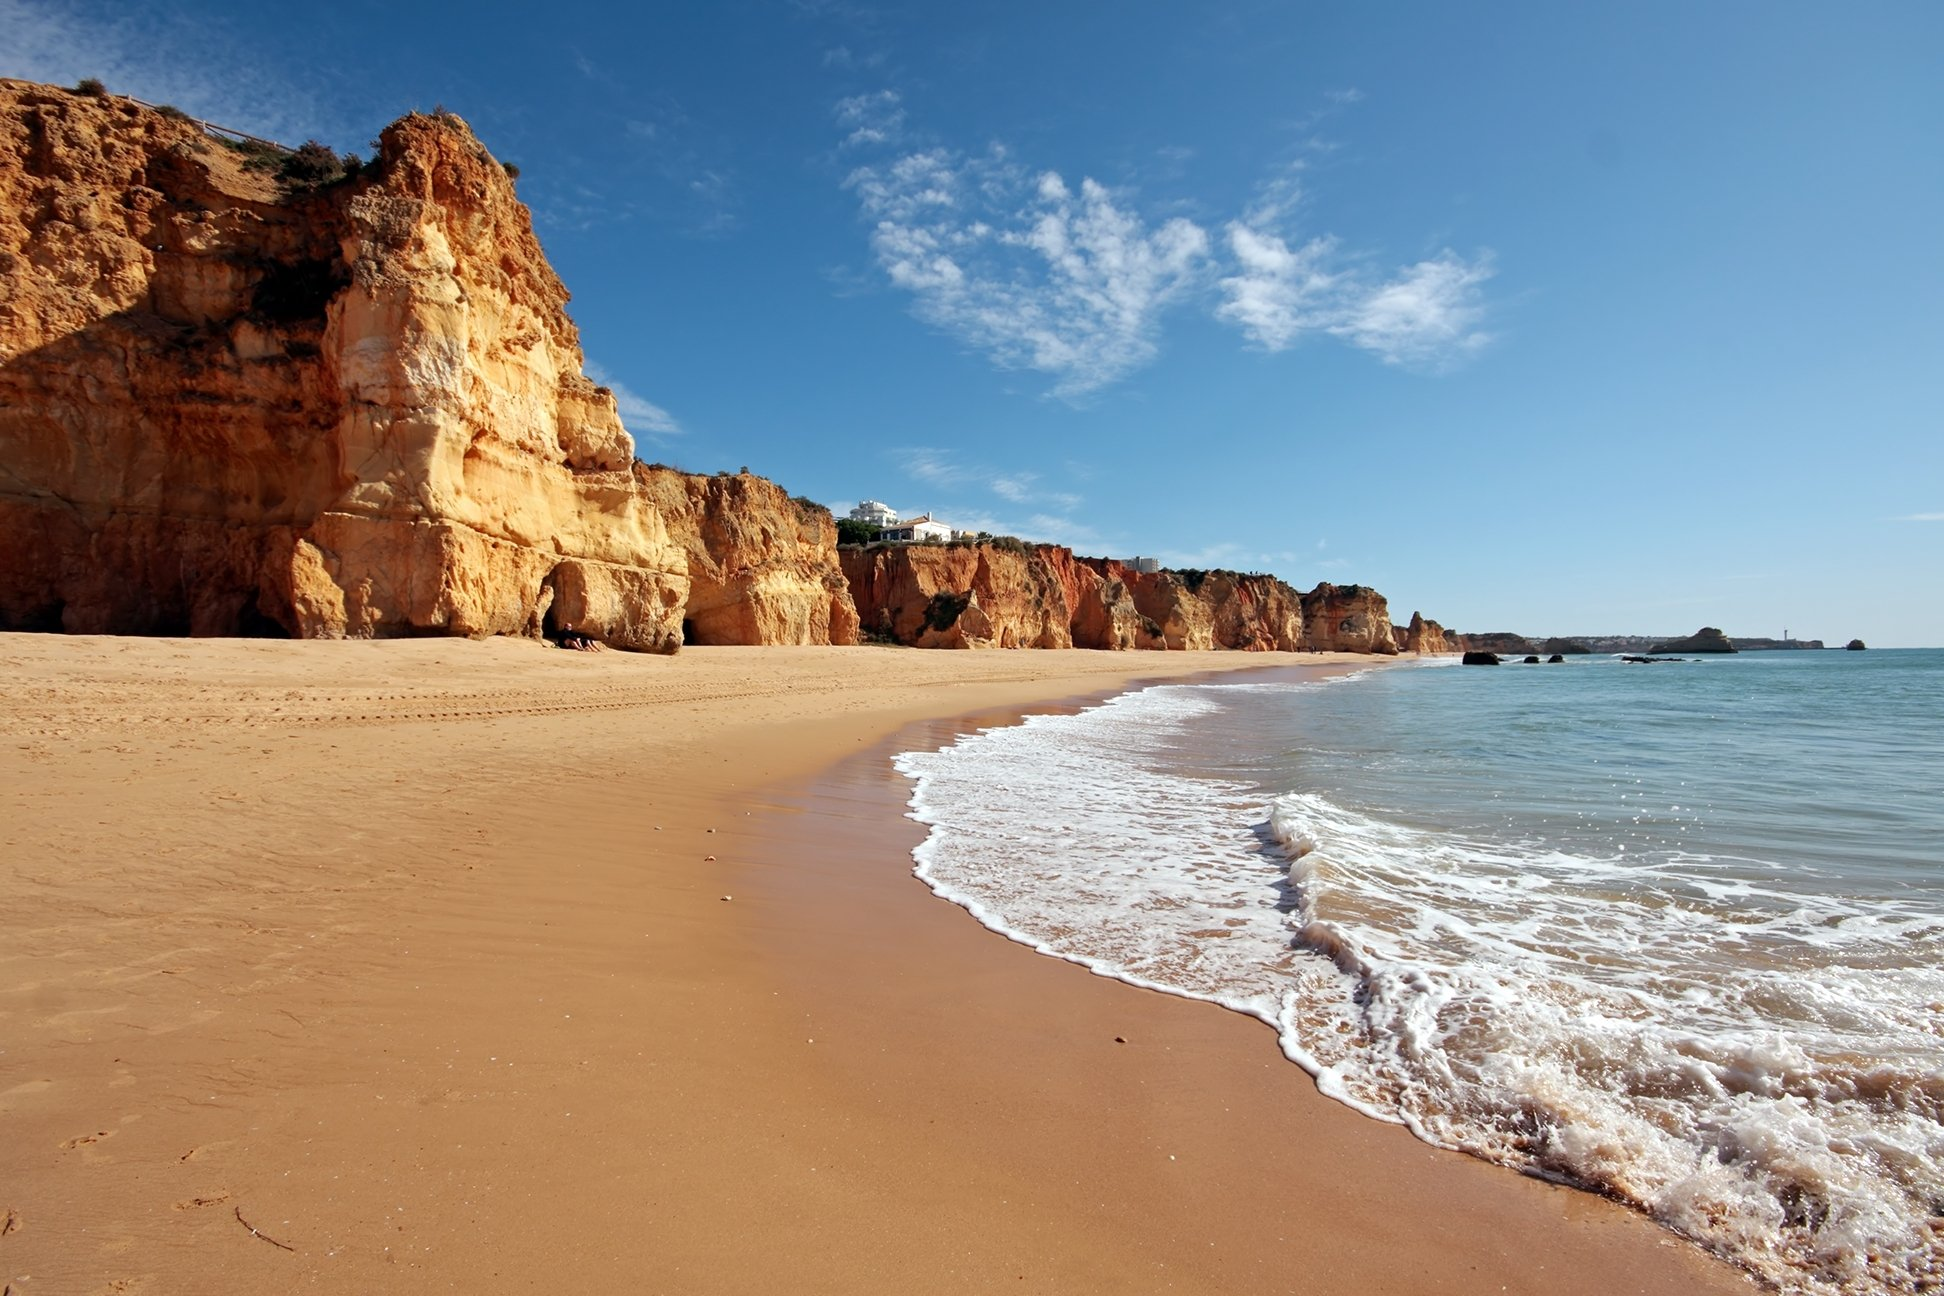 Pass The Beautiful Beach Of Praia Da Rocha On Your Way To Lagos During The South Of Portugal 4 Day Package Tour